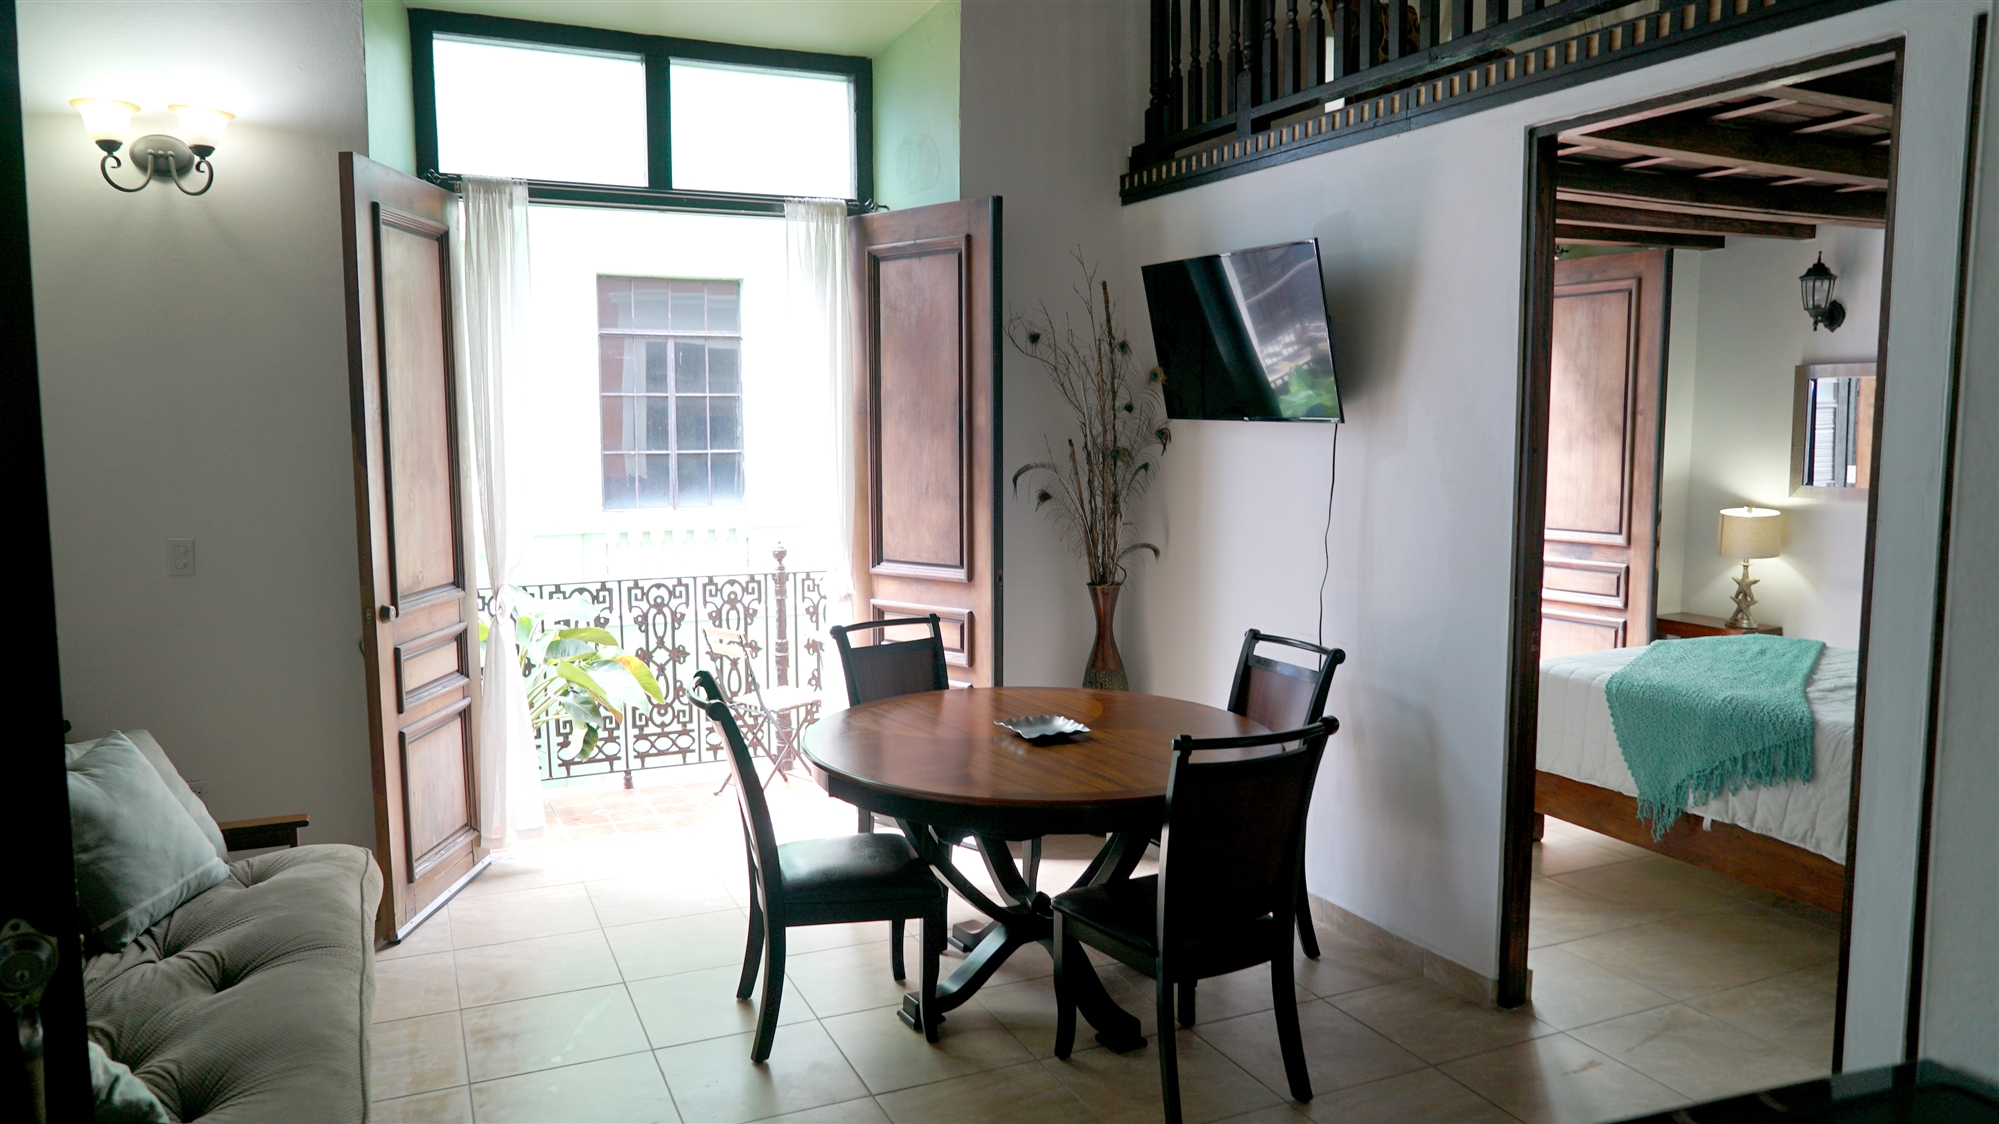 Image for 251 Fortaleza, Suite 1